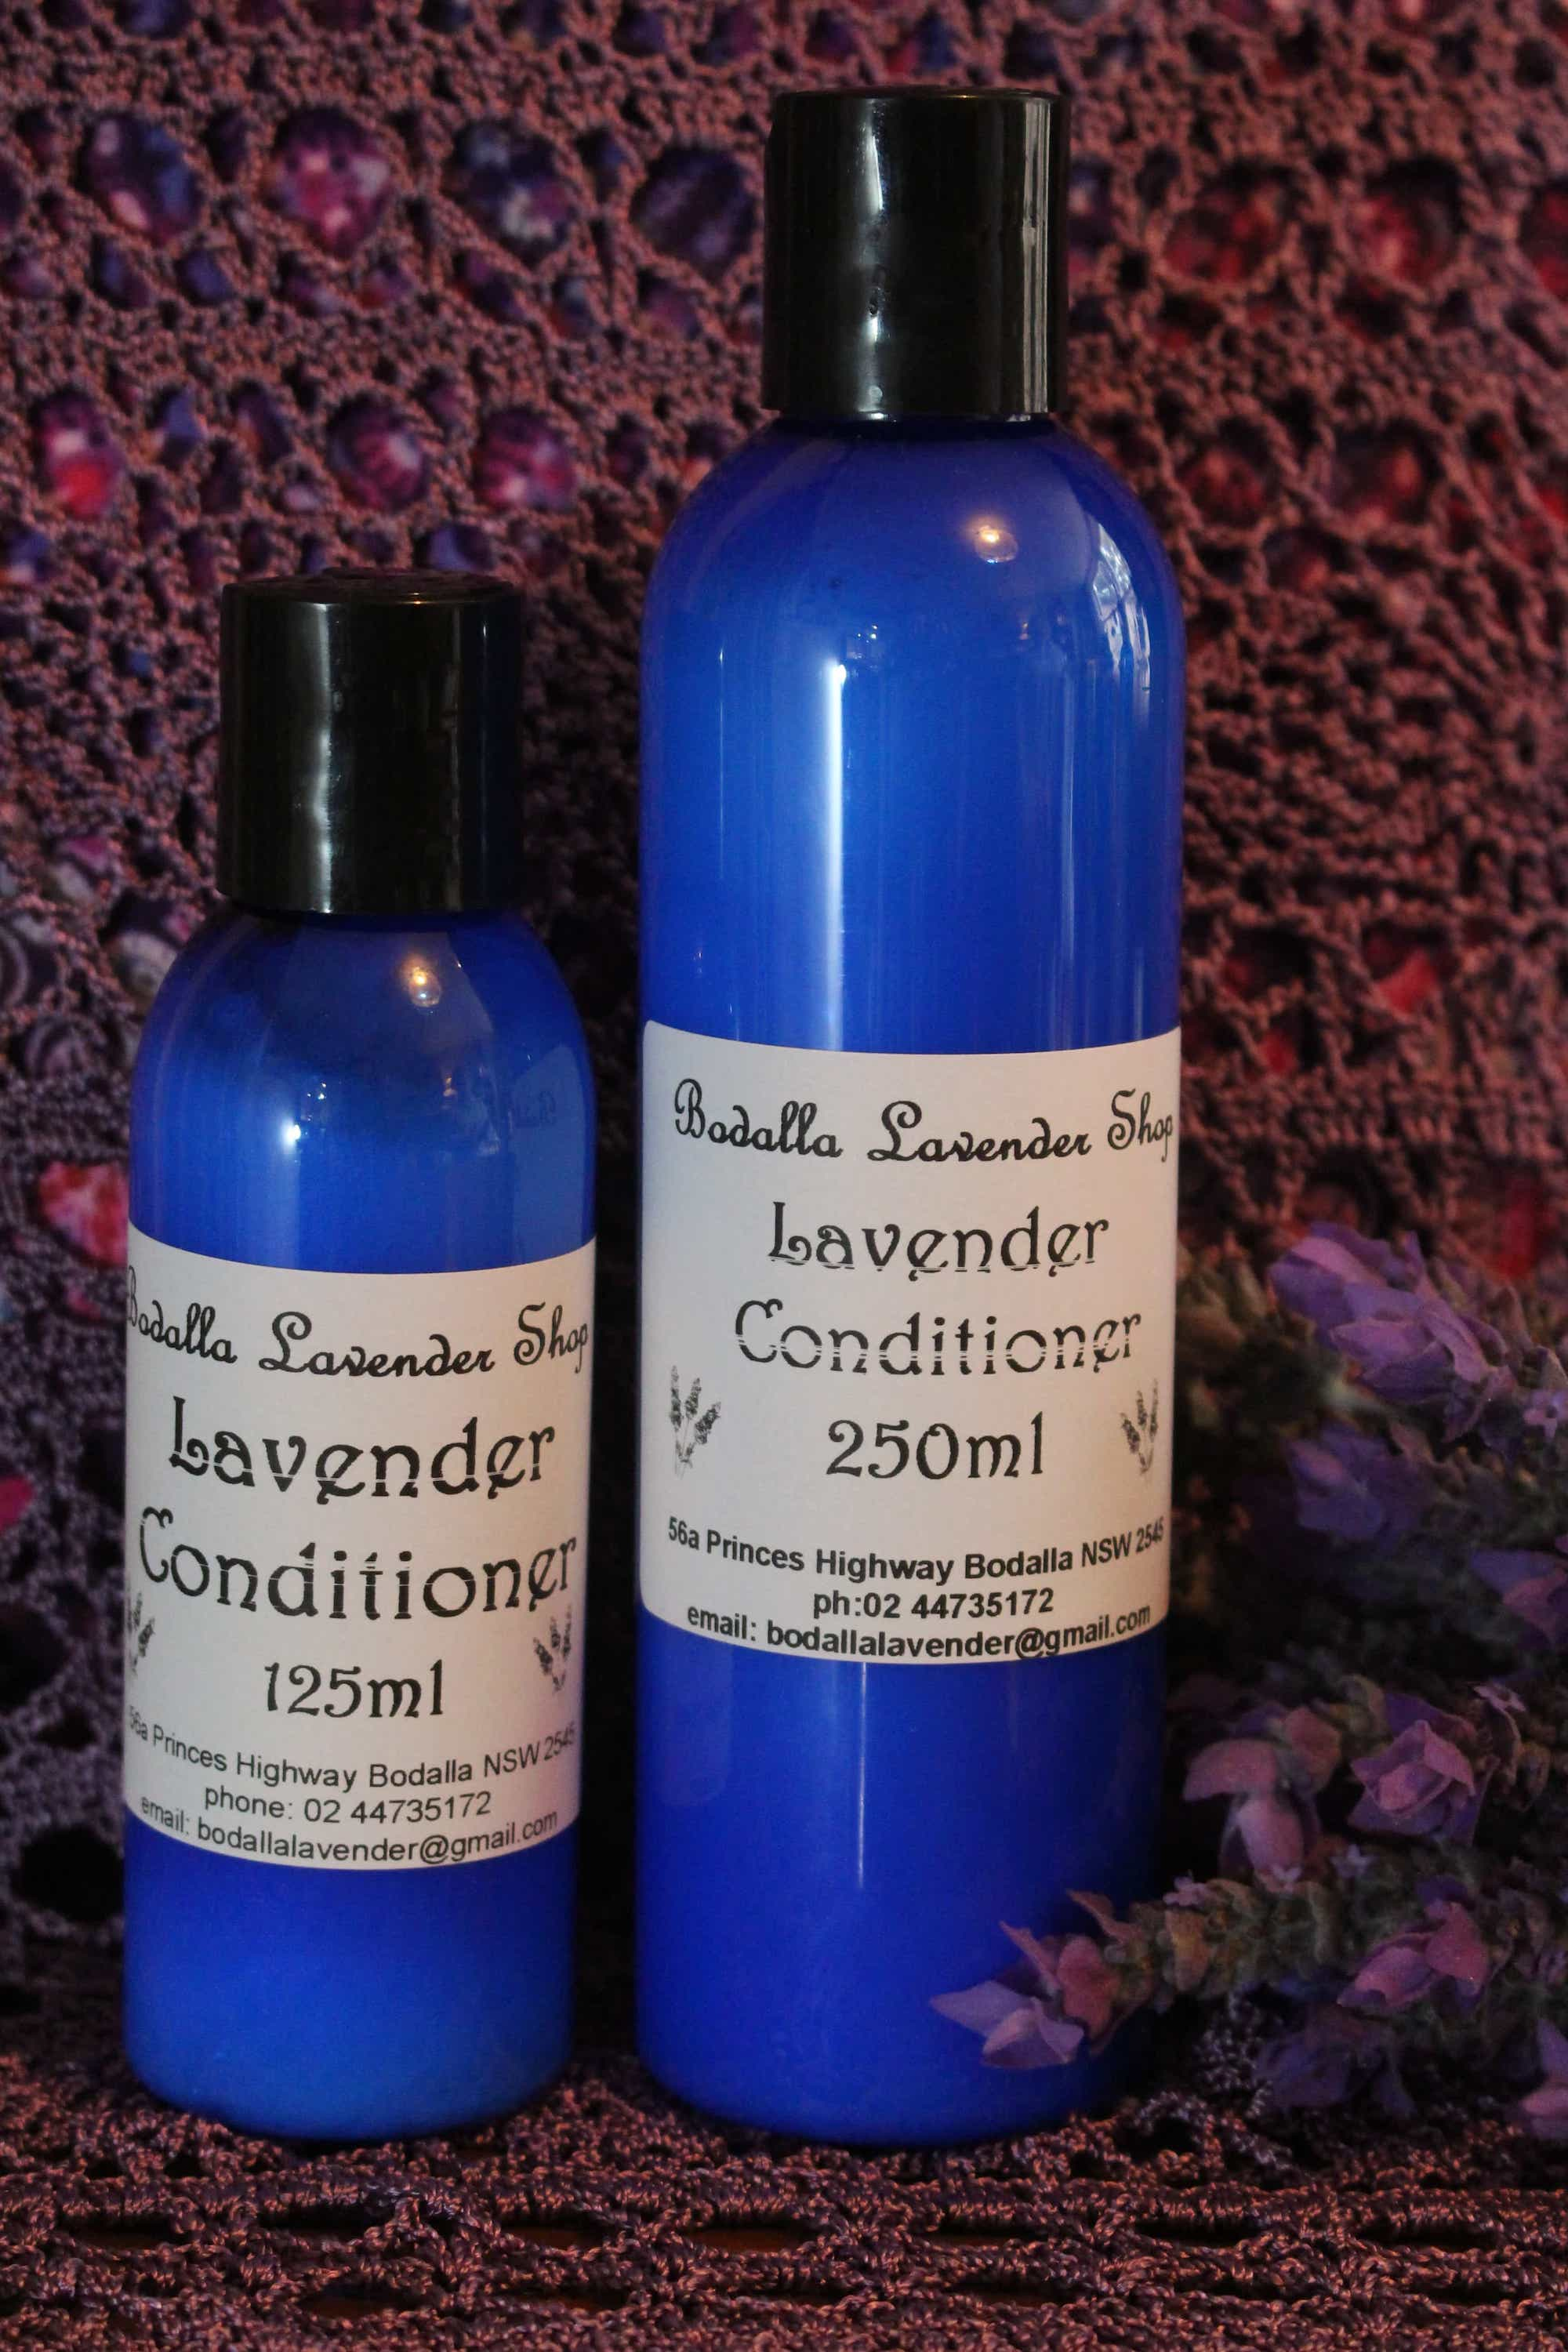 Photograph of an Lavender Conditioner 250ml product